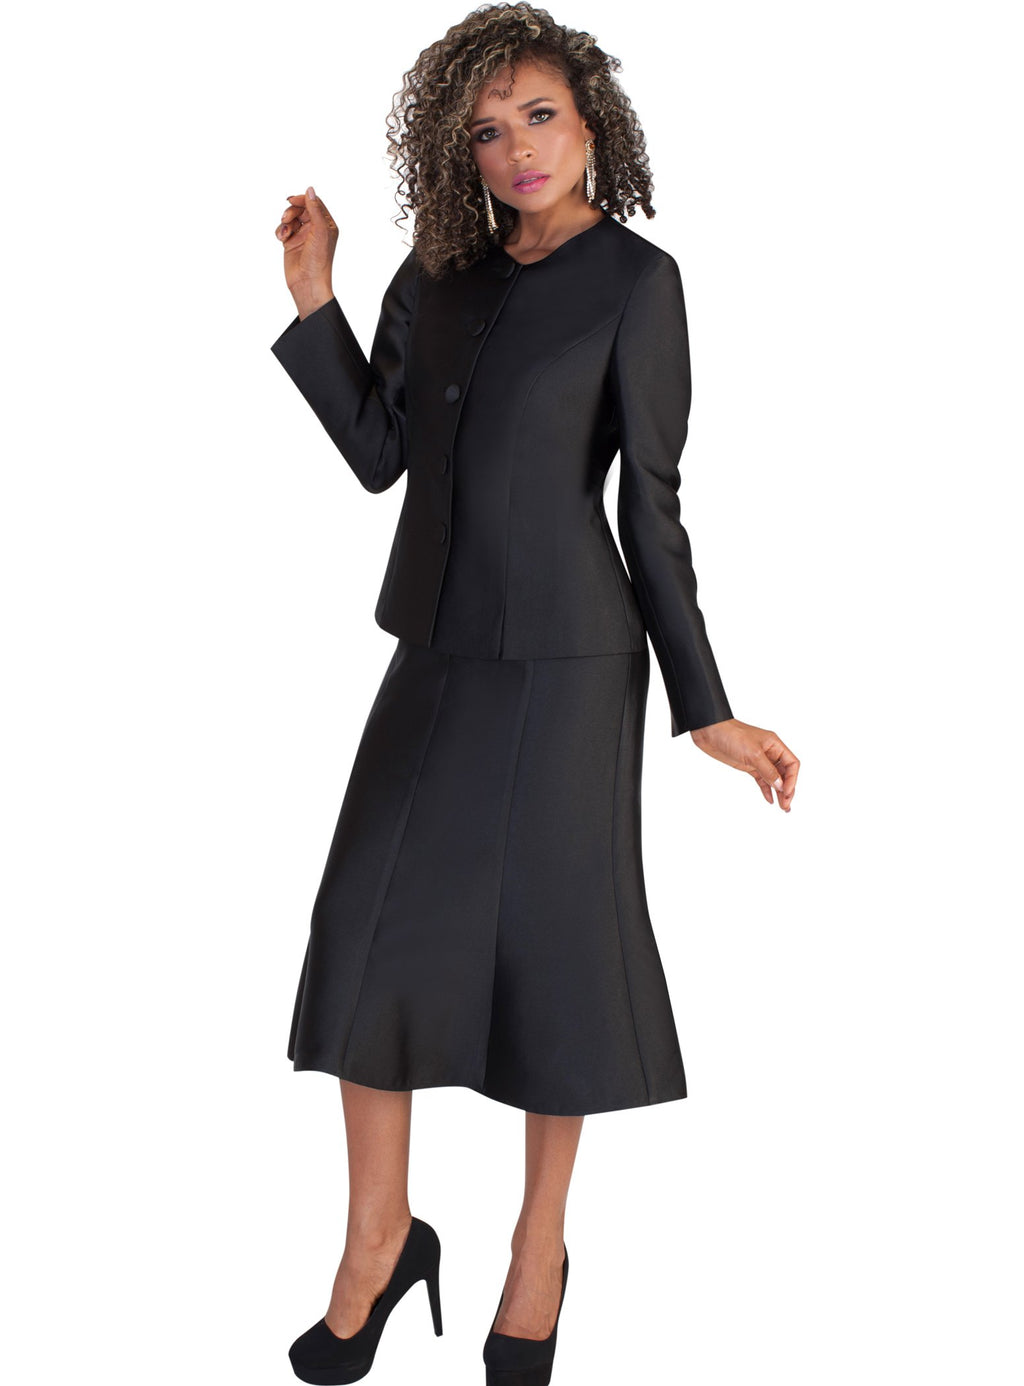 Detachable Shawl Flare Skirt Suit